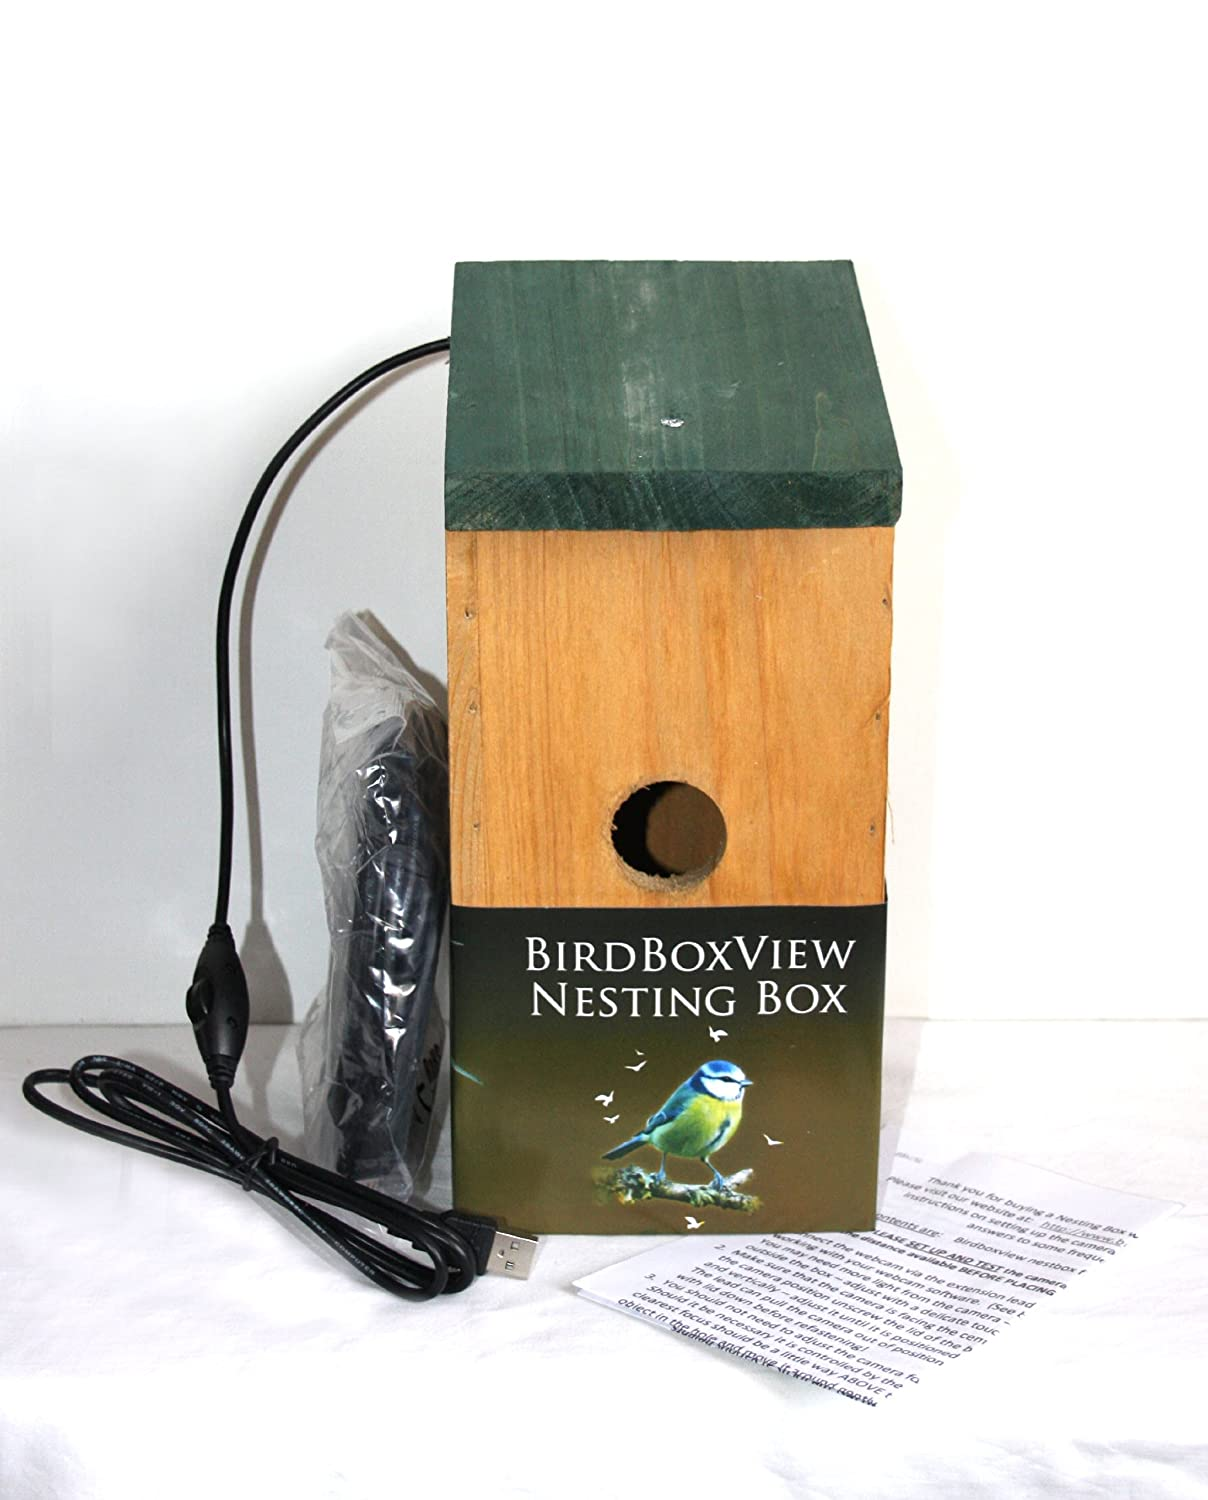 Birdboxview CAMERA NEST BOX (Webcam for PC/Laptop) 21' cable. Ideal gift for bird enthusiasts, great for Xmas or family springwatch project!